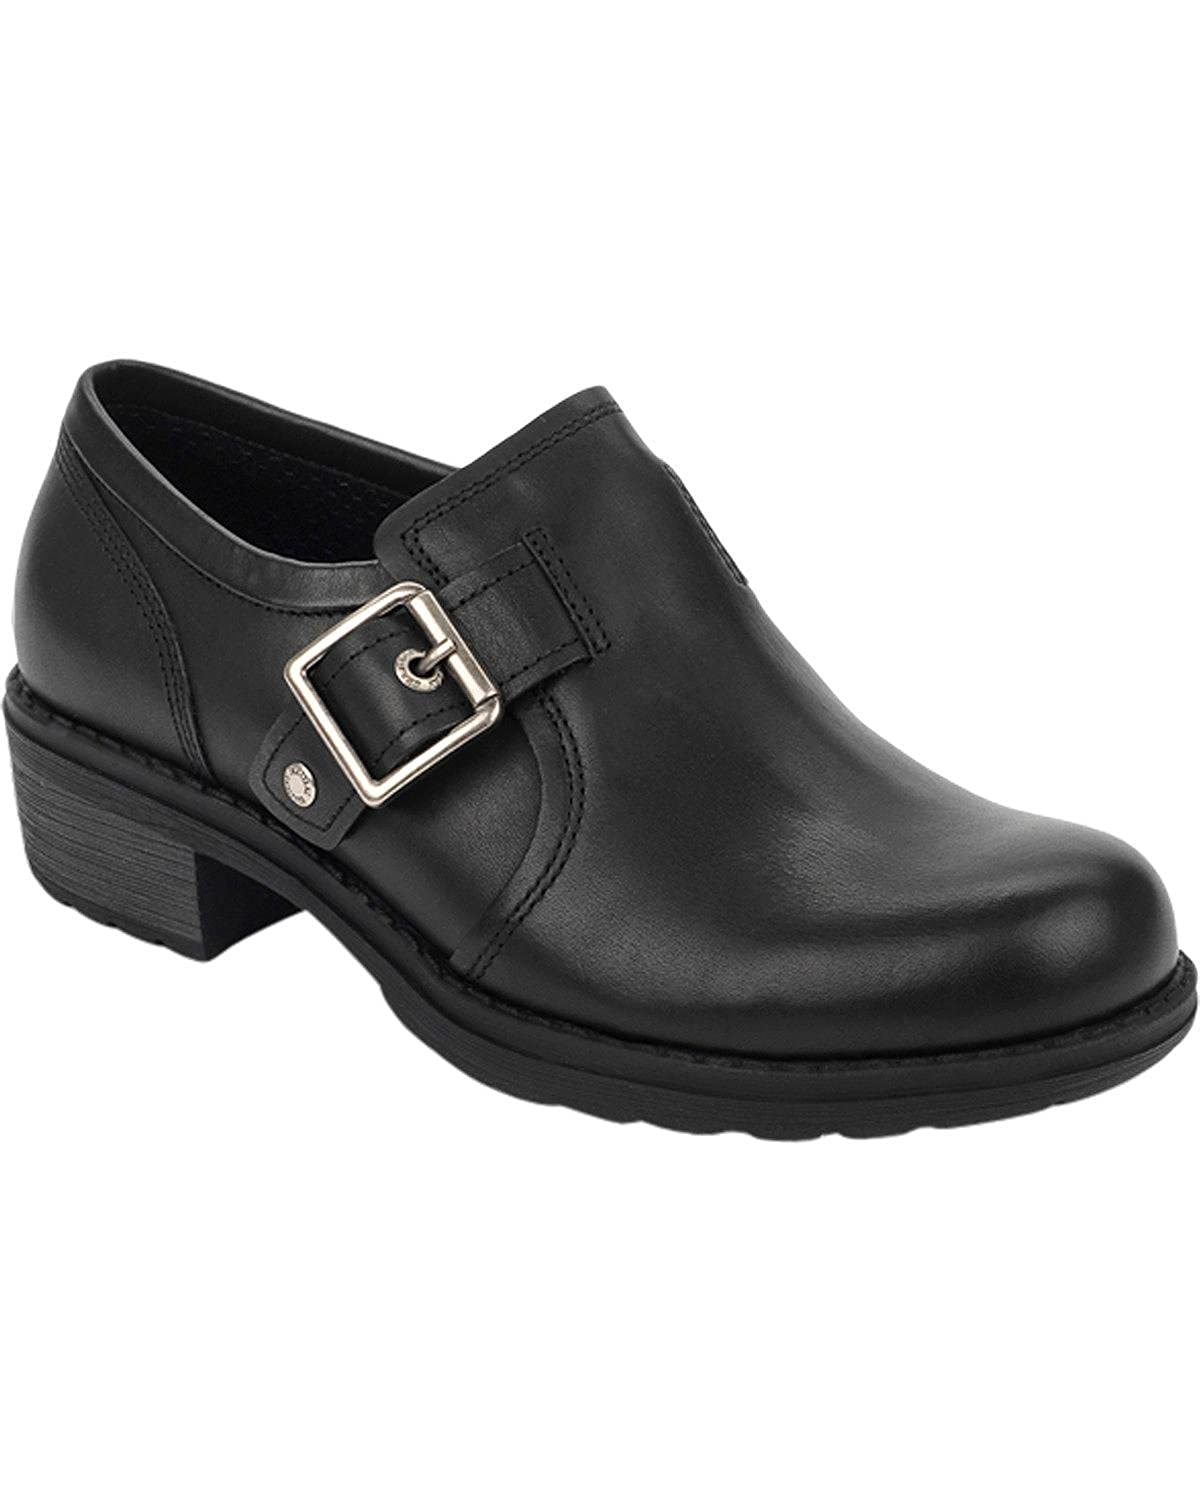 Eastland Womens Open Road Slip-Ons Black 6.5 W US